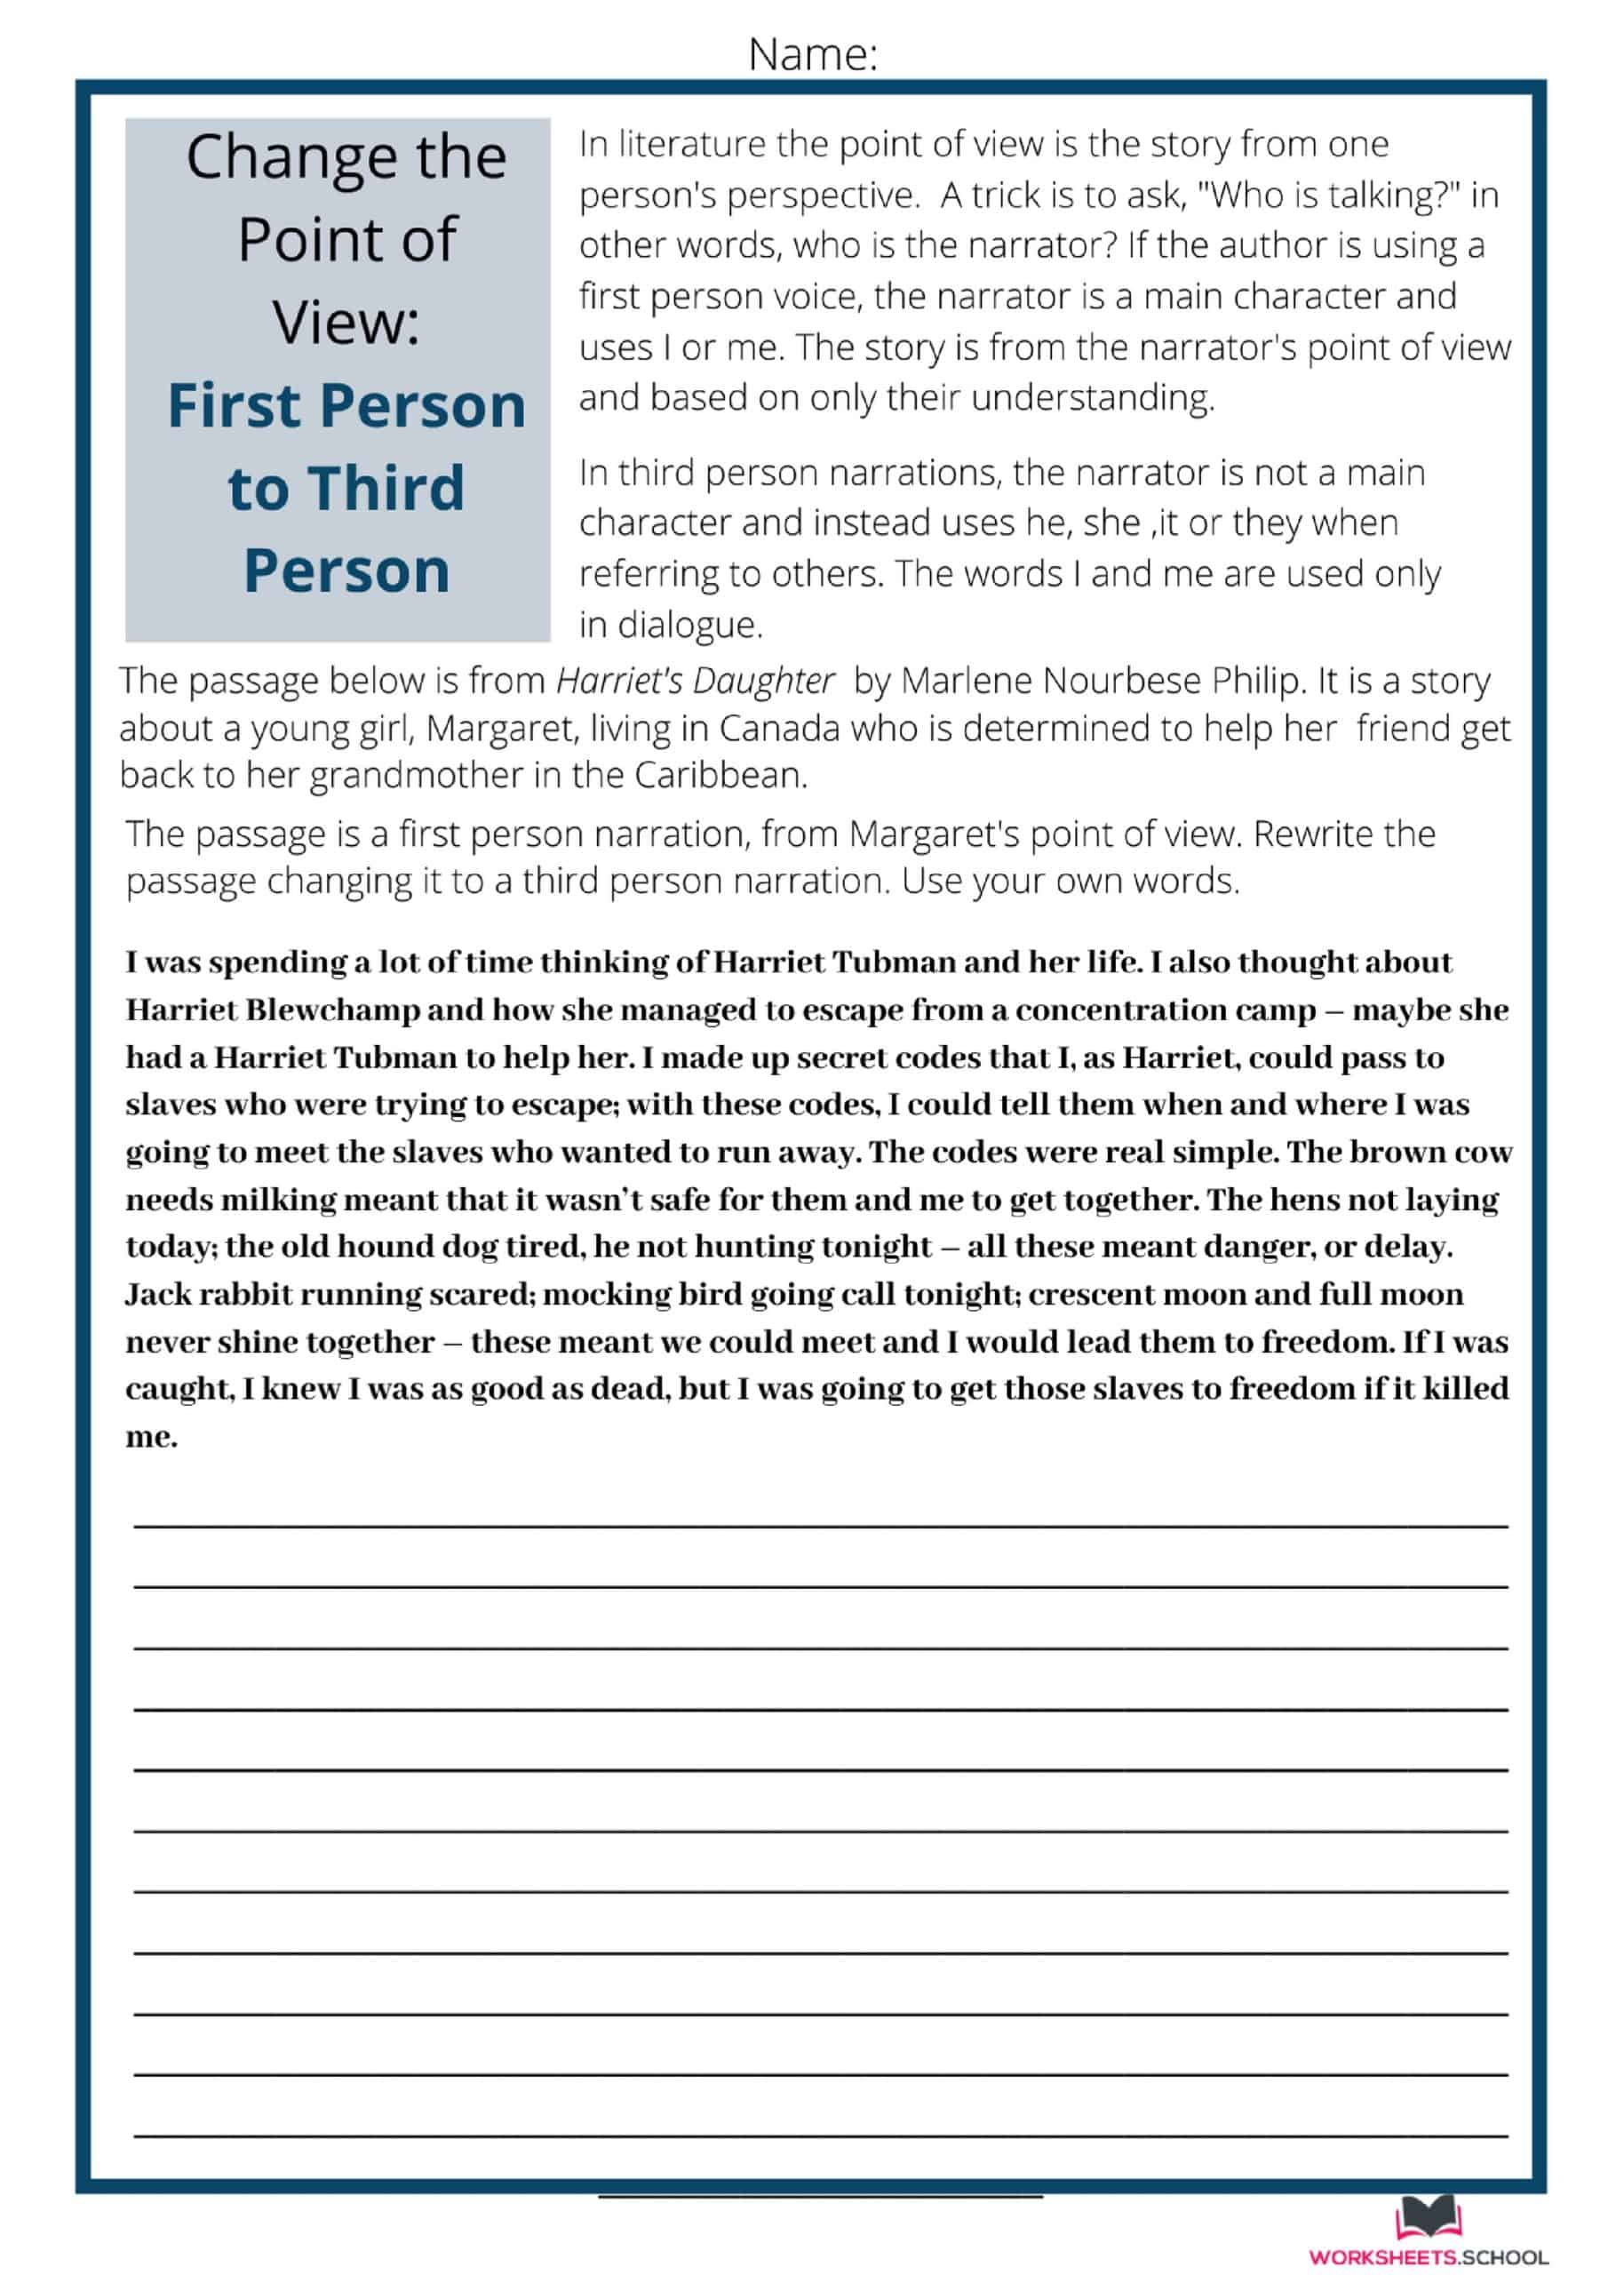 Change the Point of View Worksheet - FP to TP-Harriets Daughter